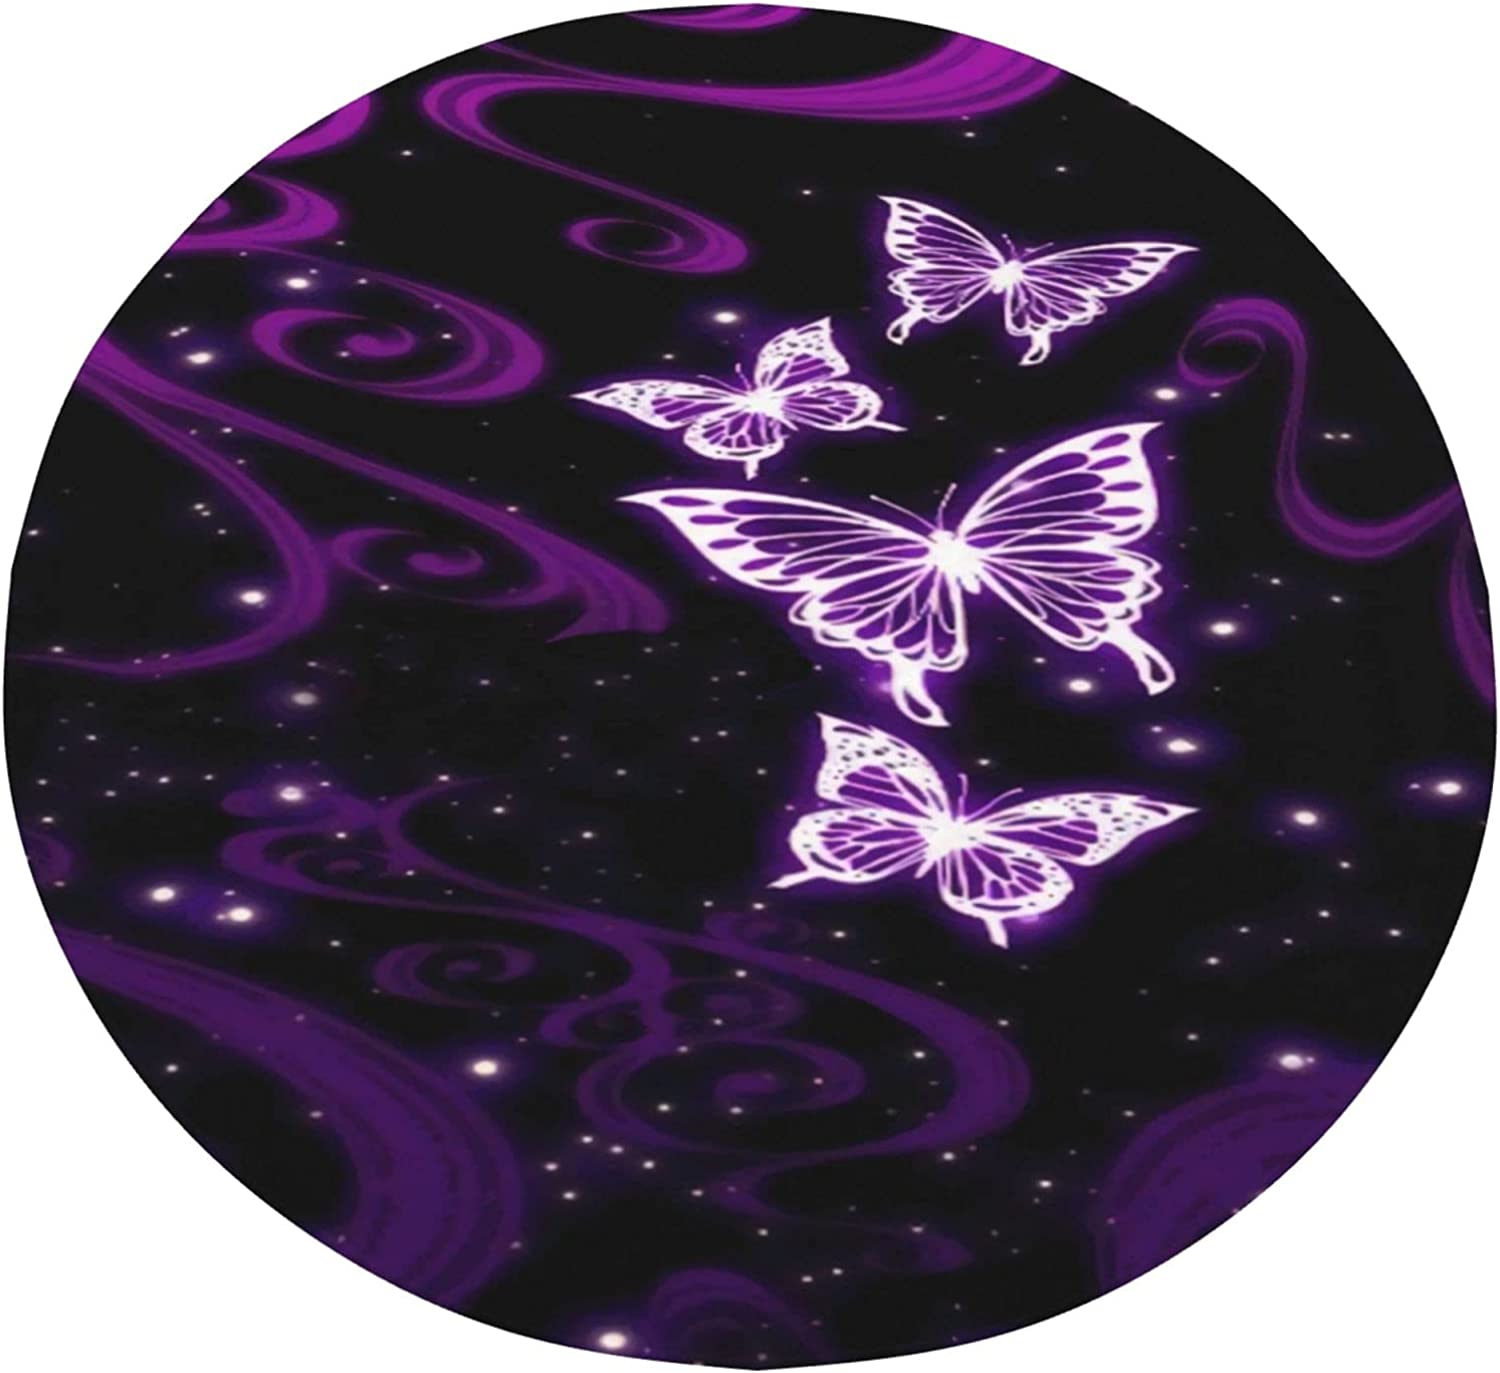 Night Space Genuine Free Shipping Purple Super-cheap Butterfly Round Blanket Warm Bedro Plush Soft